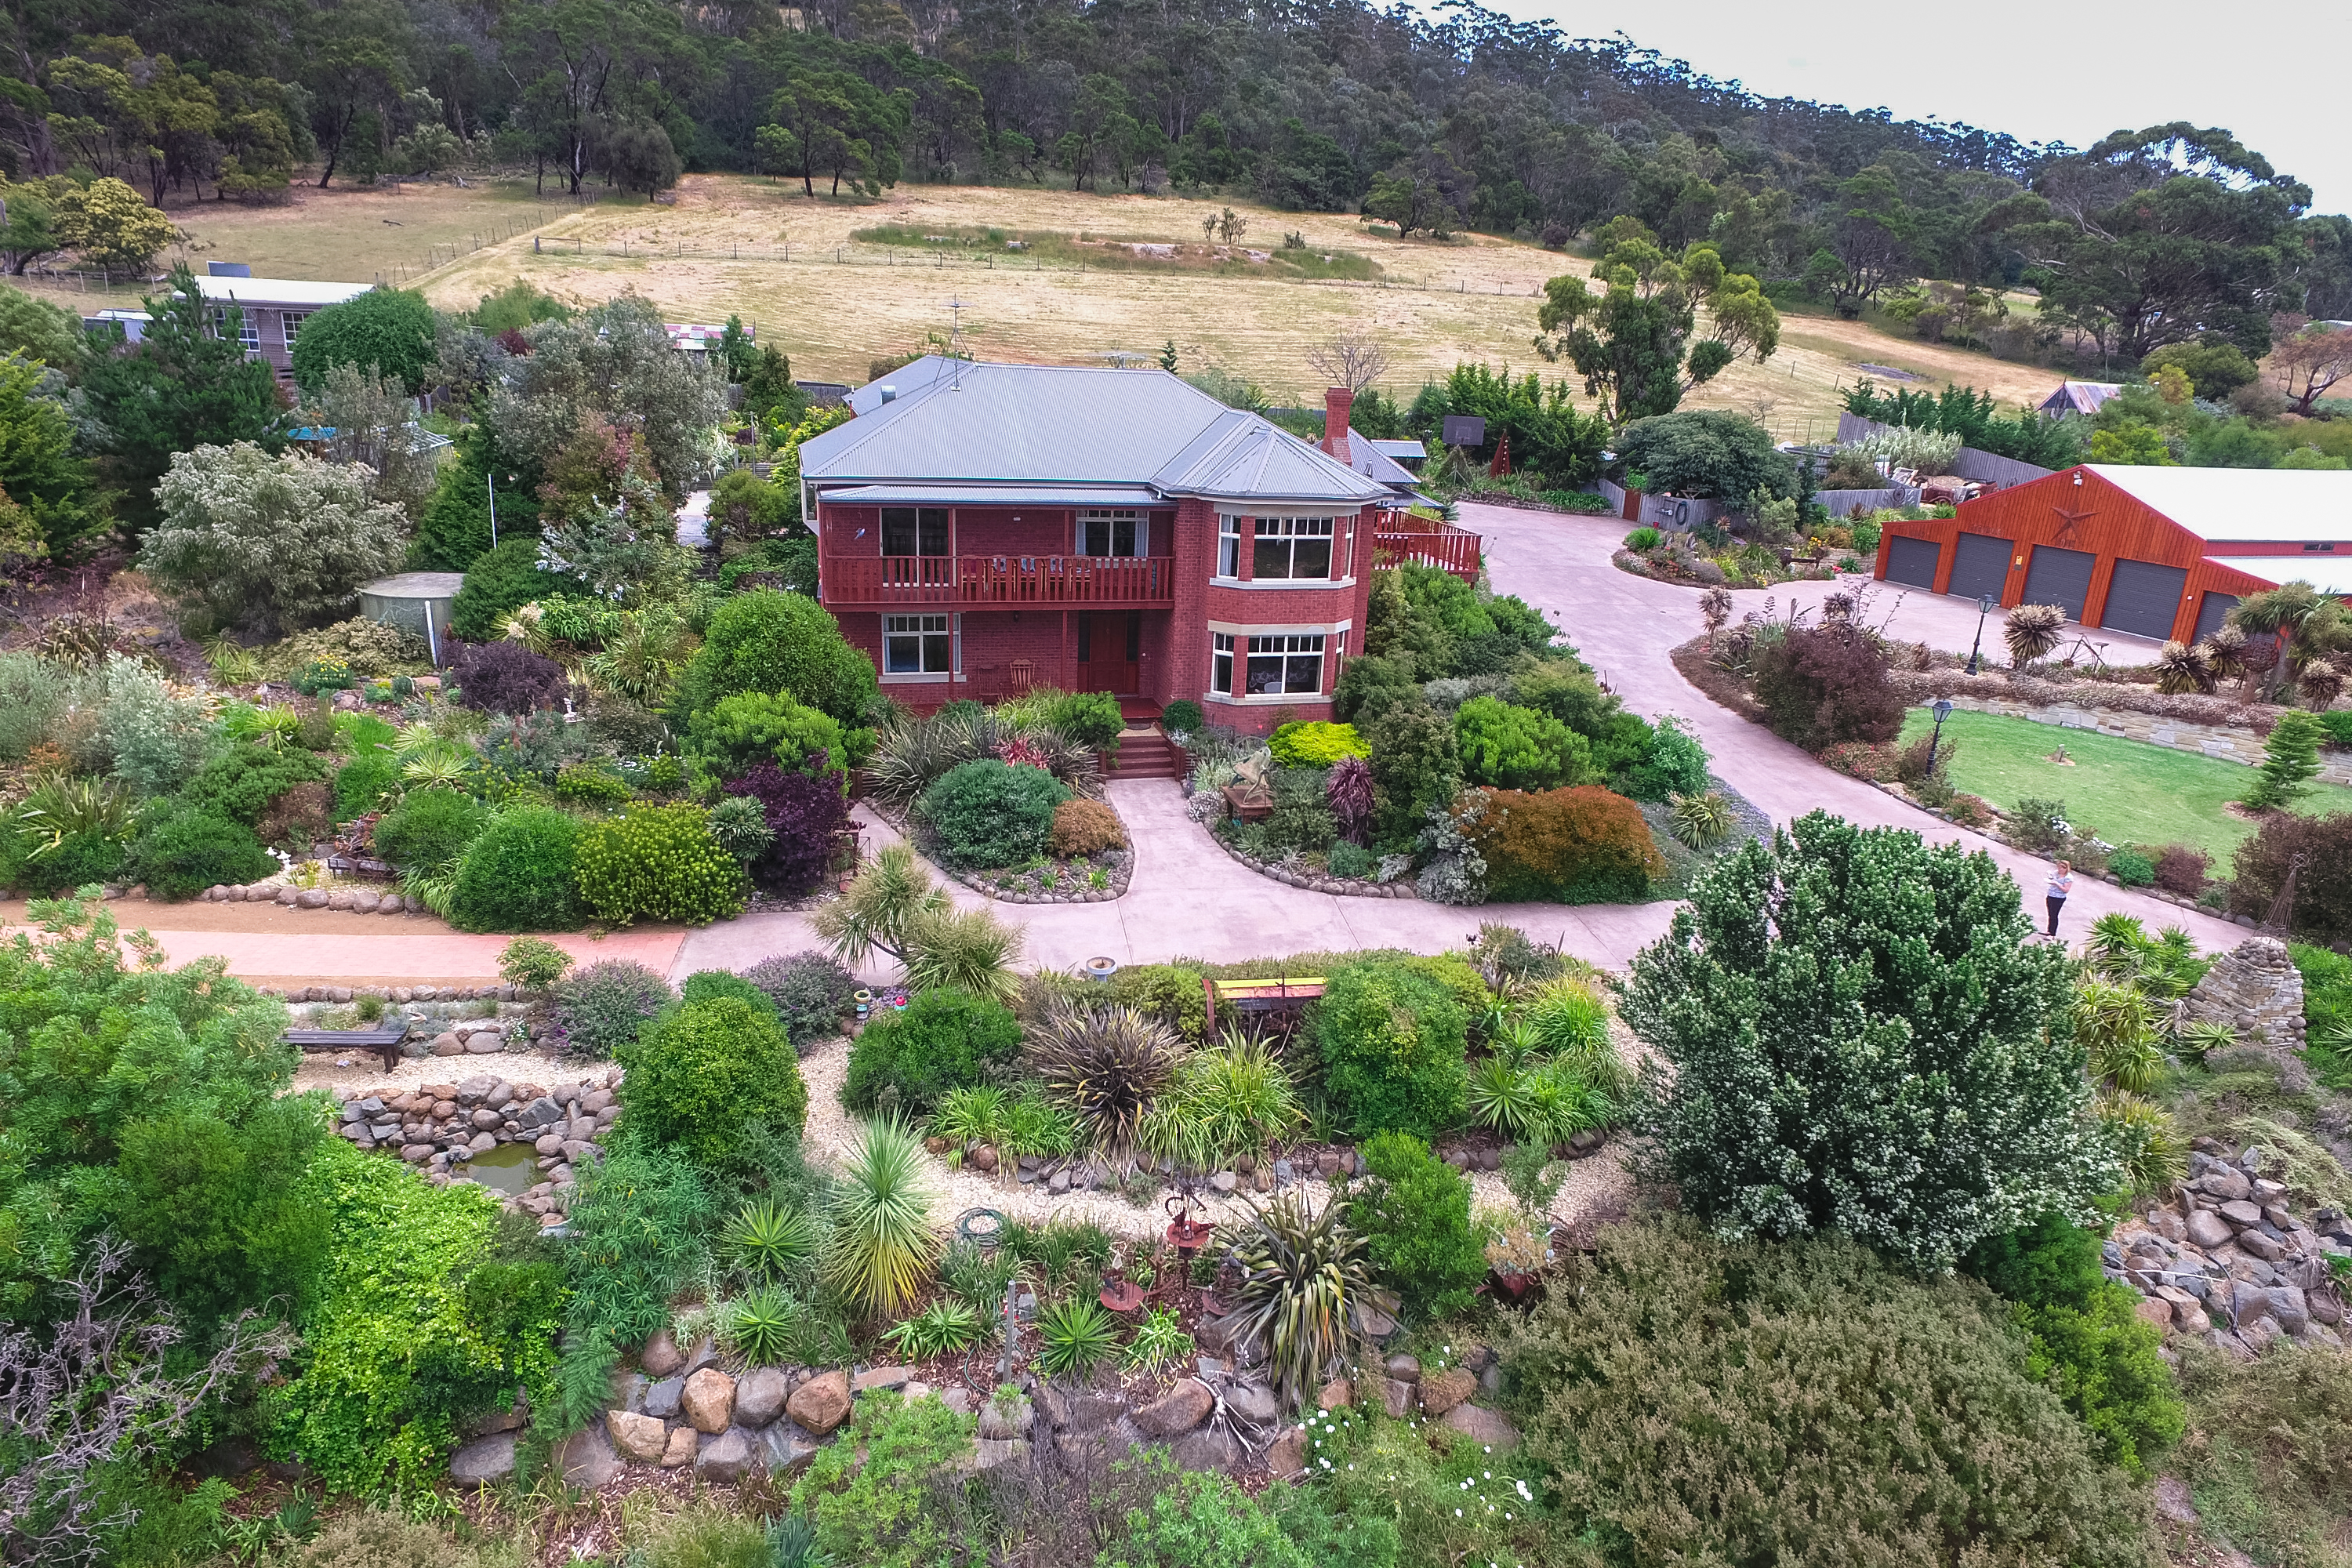 2185 south arm road sandford tas 7020 house for sale for Beach house designs tasmania